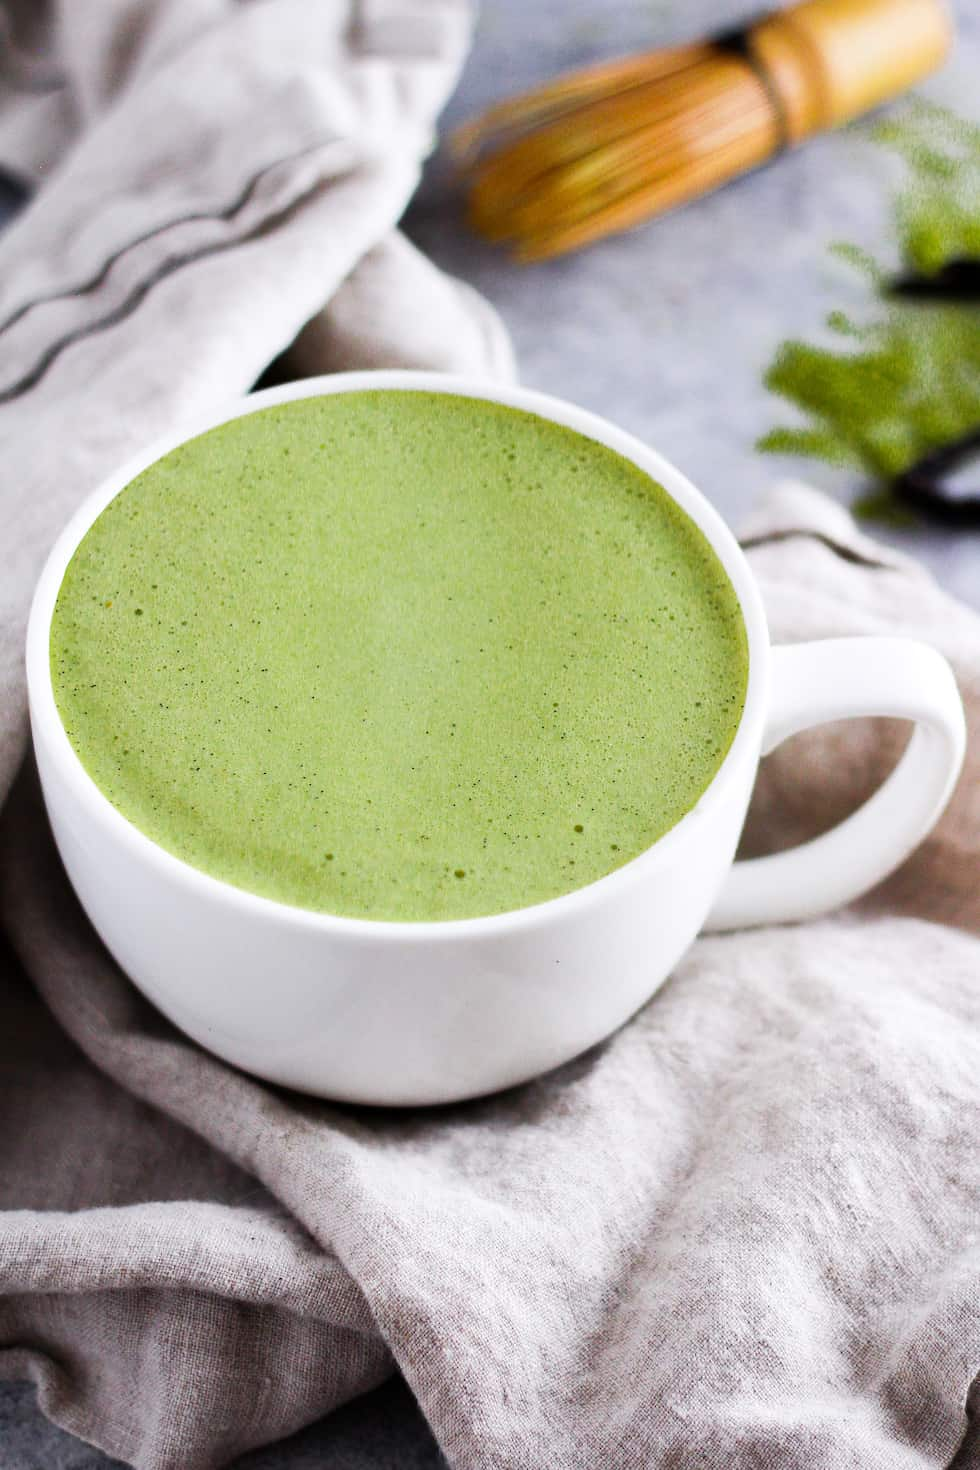 Matcha latte in white mug with cream napkin and whisk in background.